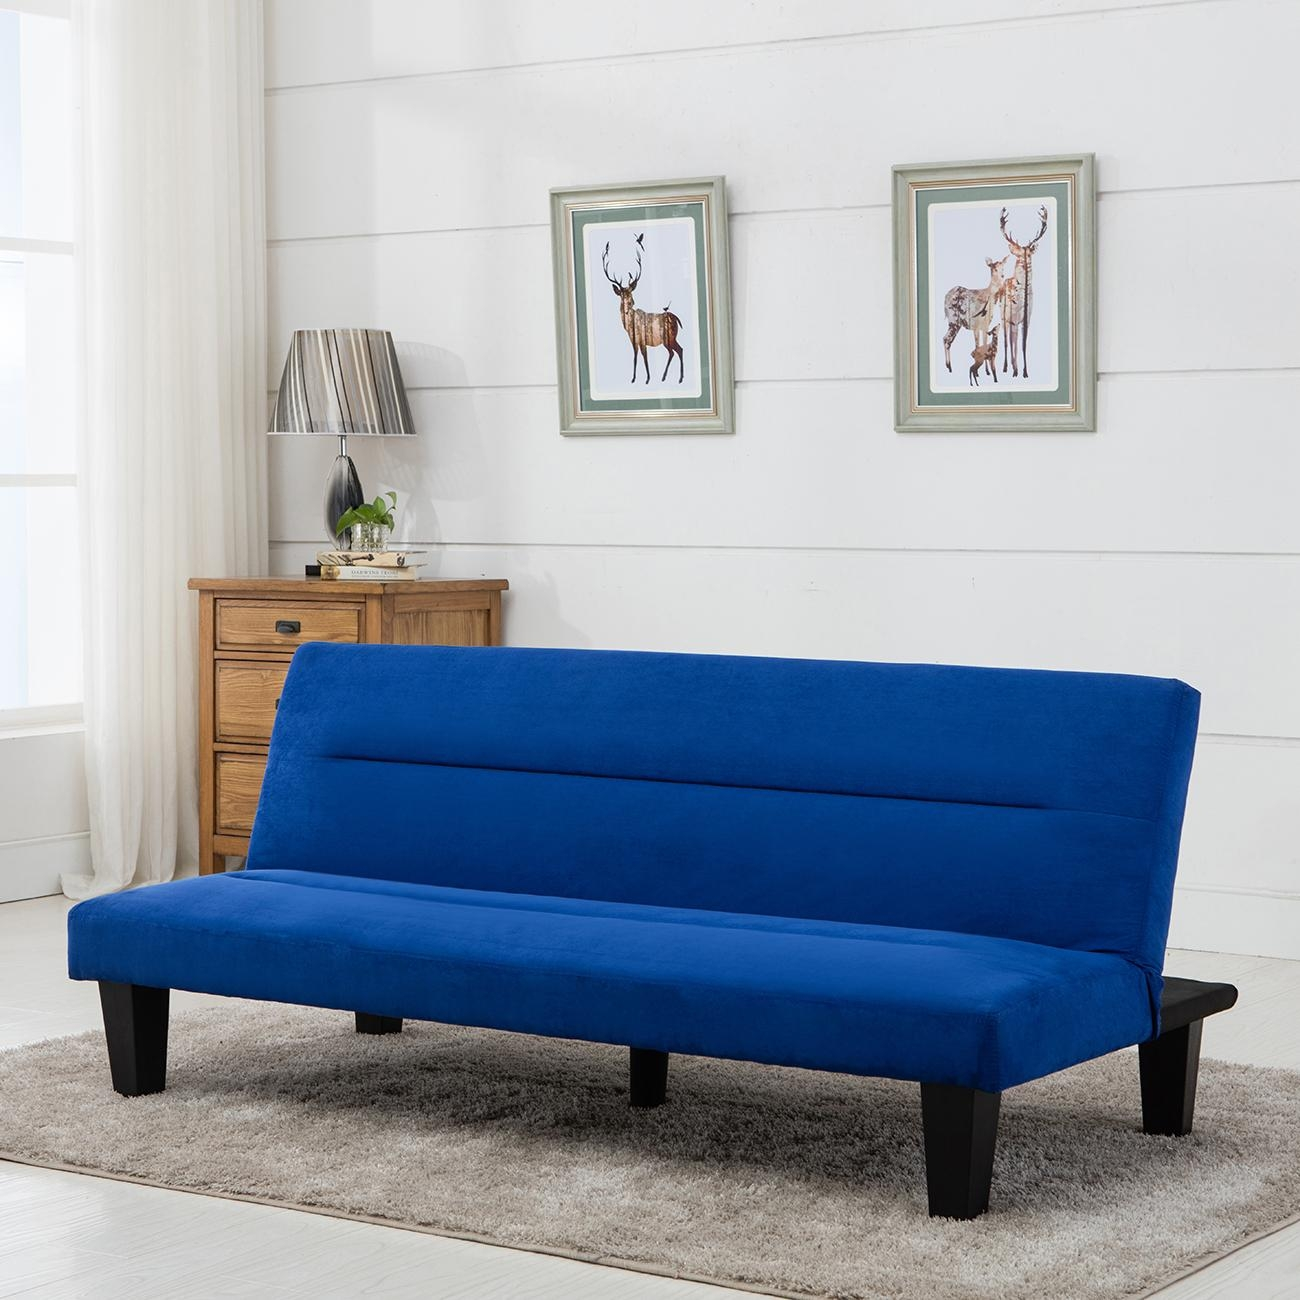 Modern Style Sofa Bed Futon Couch Sleeper Lounge Sleep Dorm Office Intended For Futon Couch Beds (Image 19 of 20)